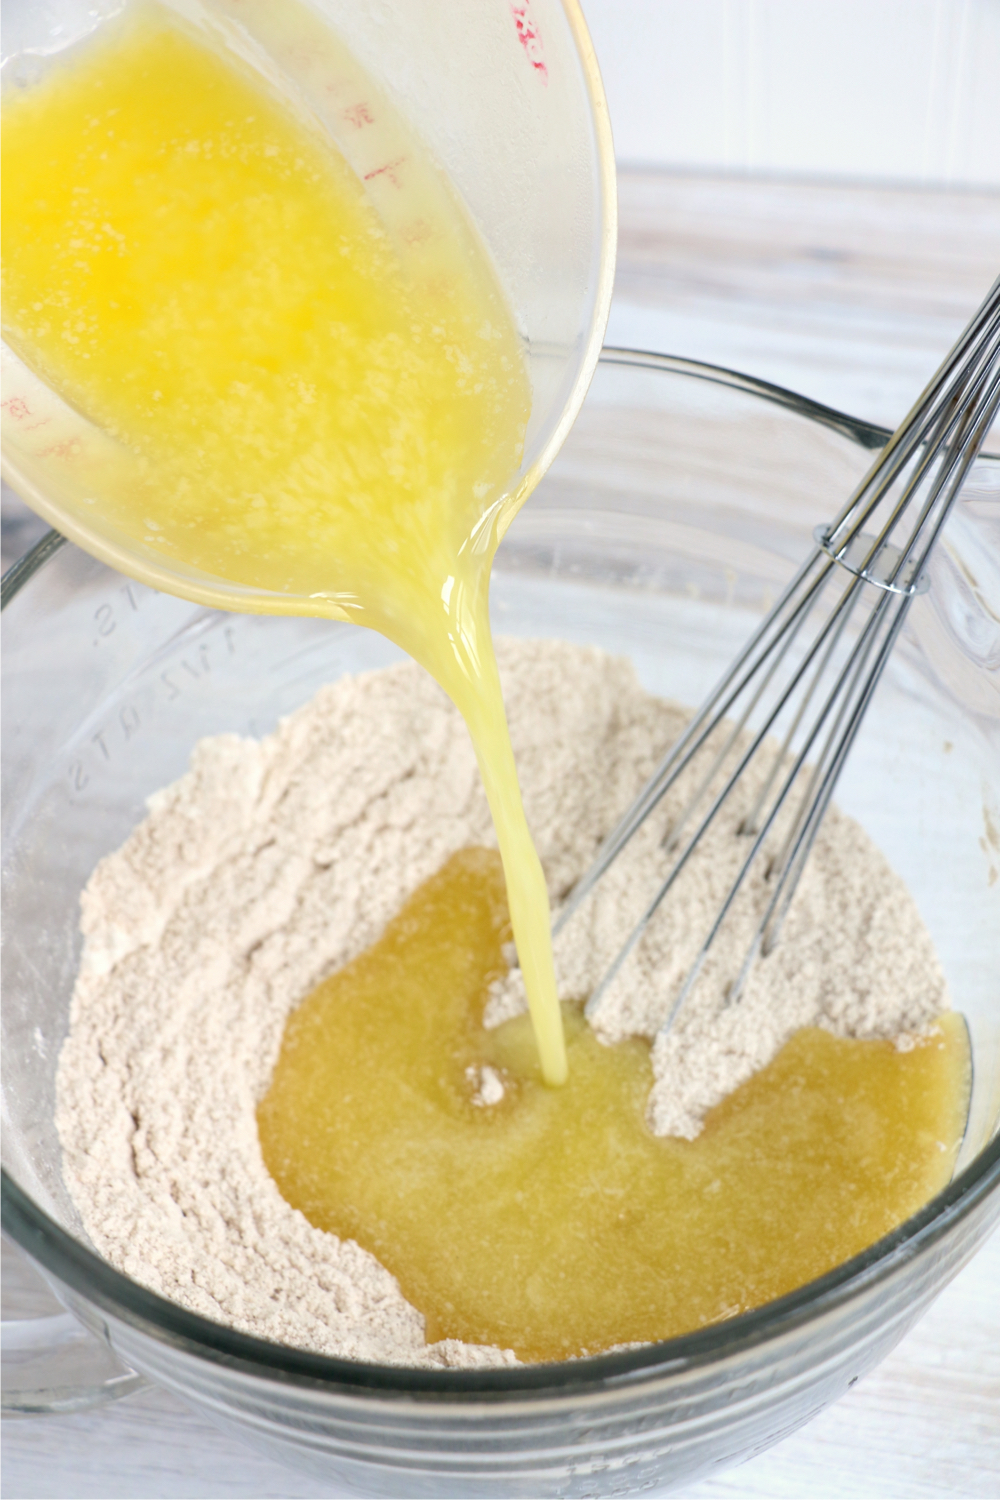 pouring melted butter into a flour mixture